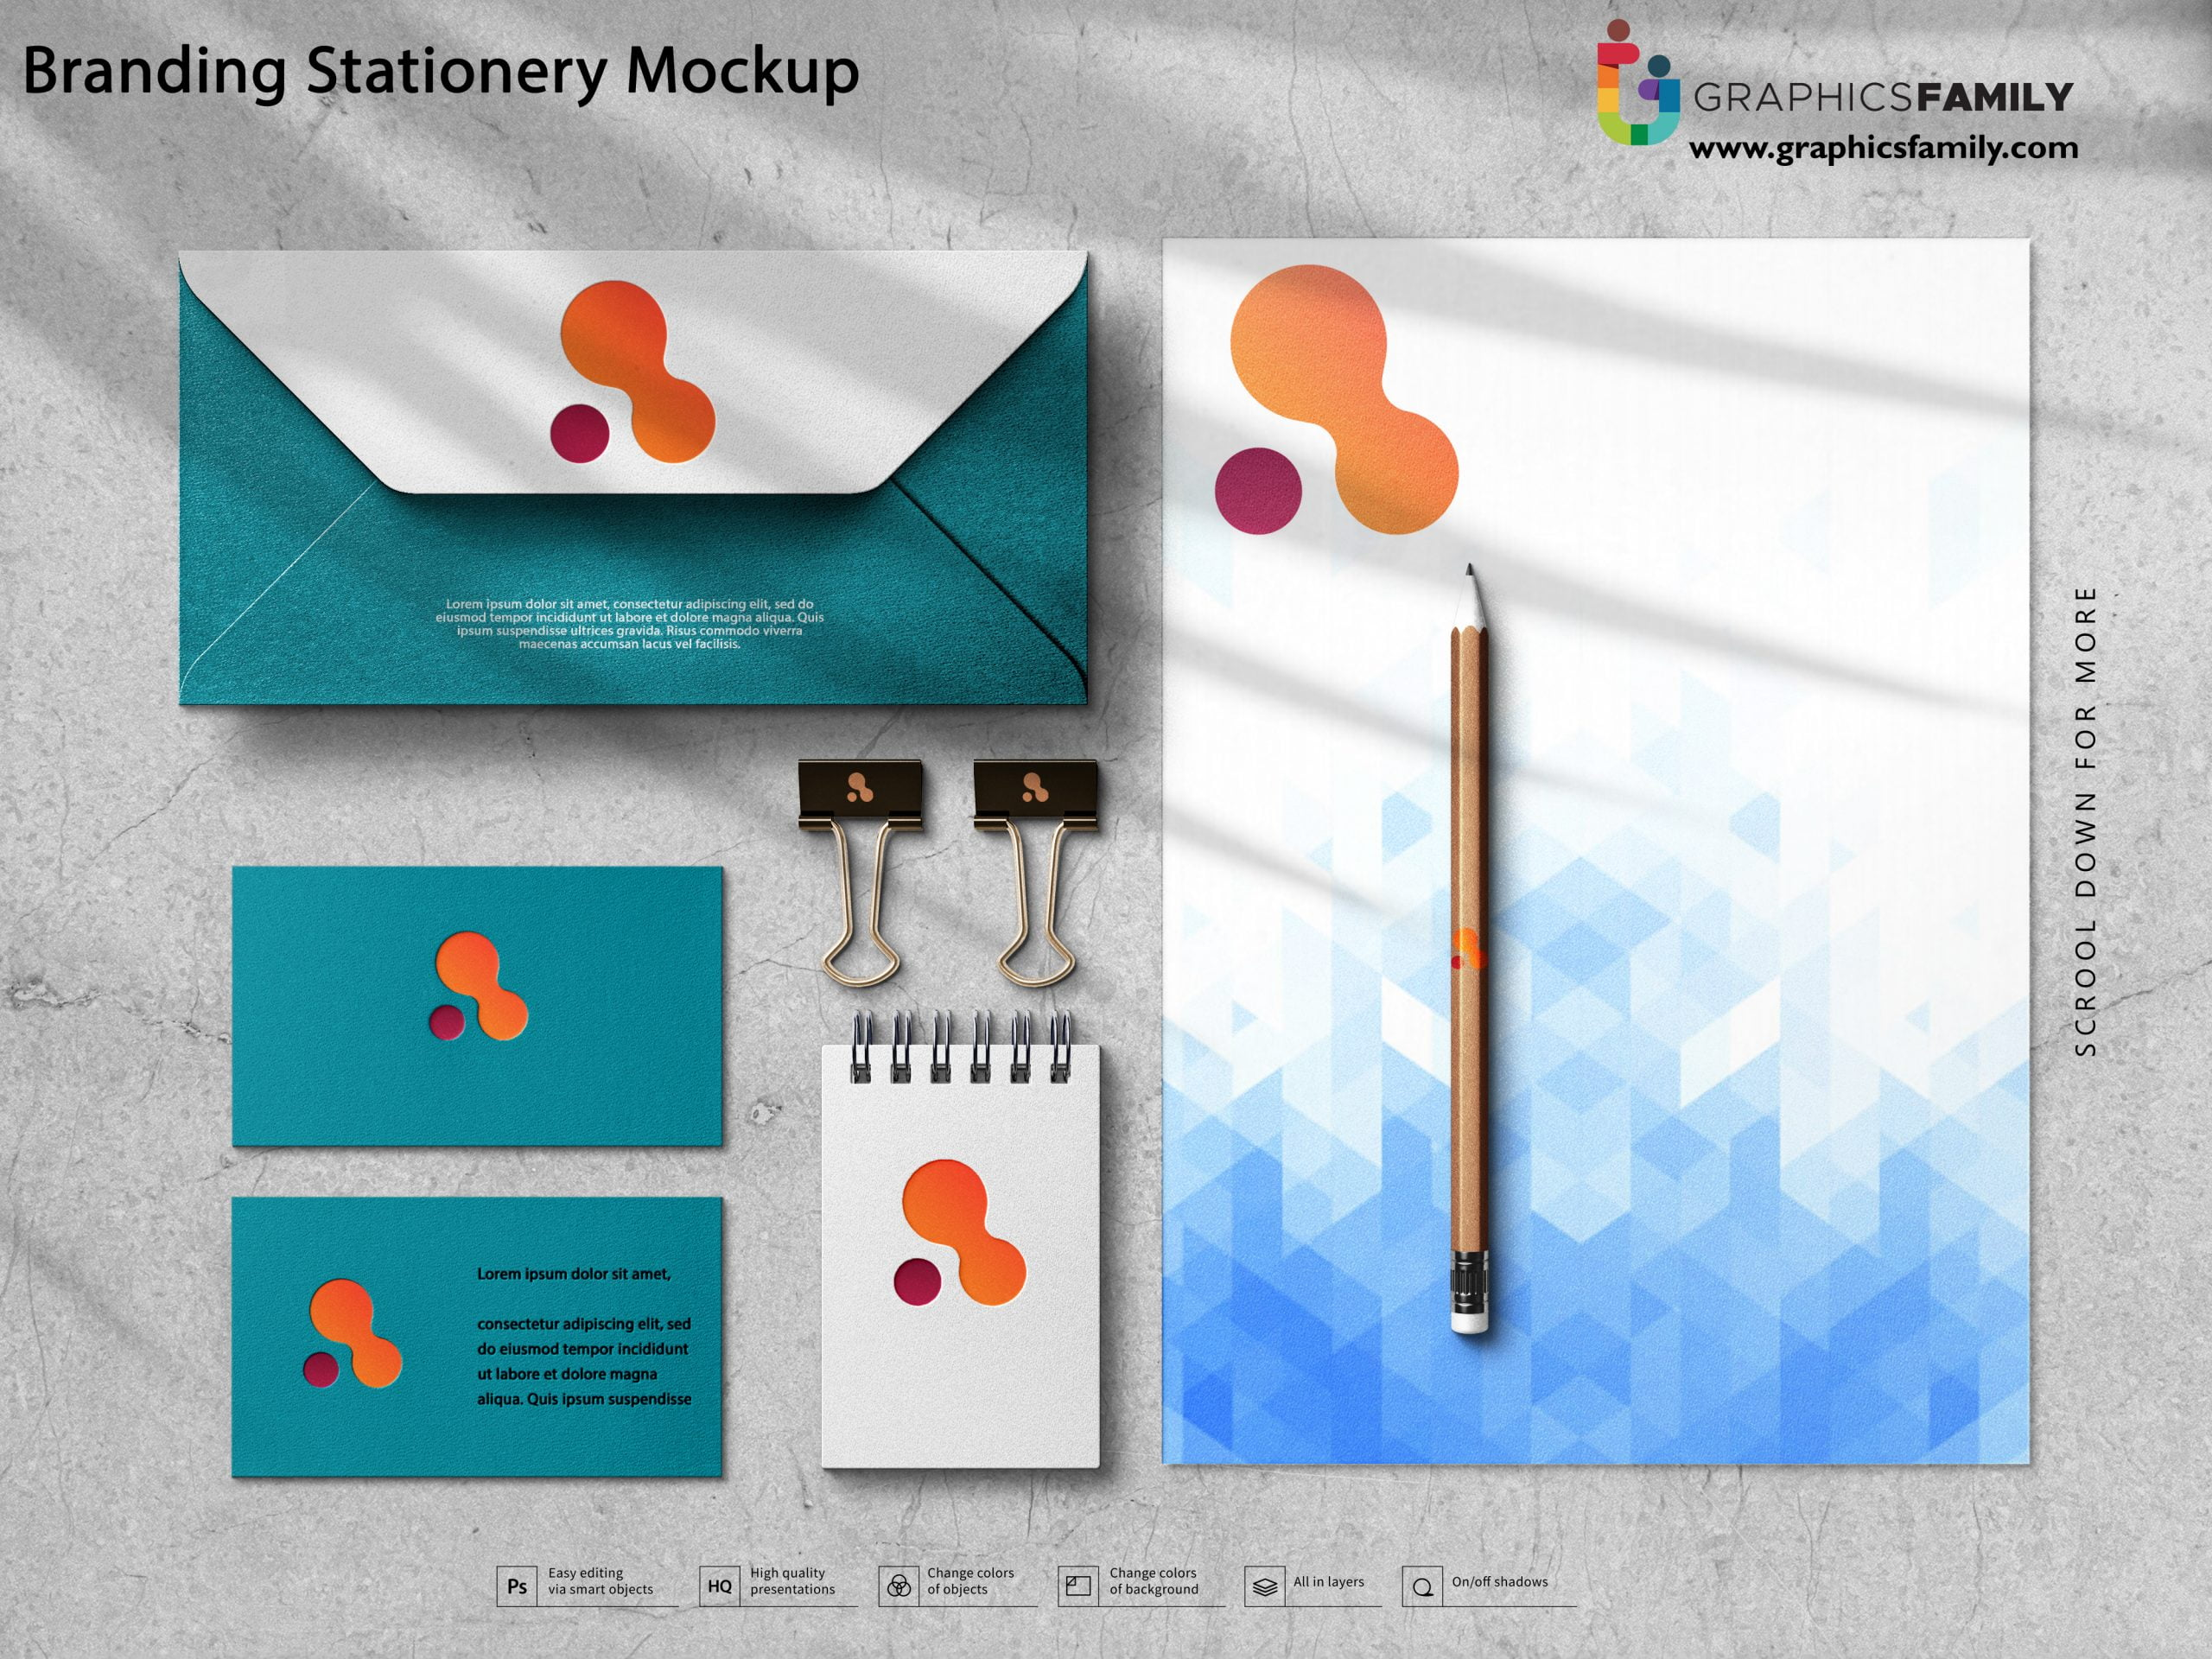 Free Simple Branding Stationery Mockup PSD Download